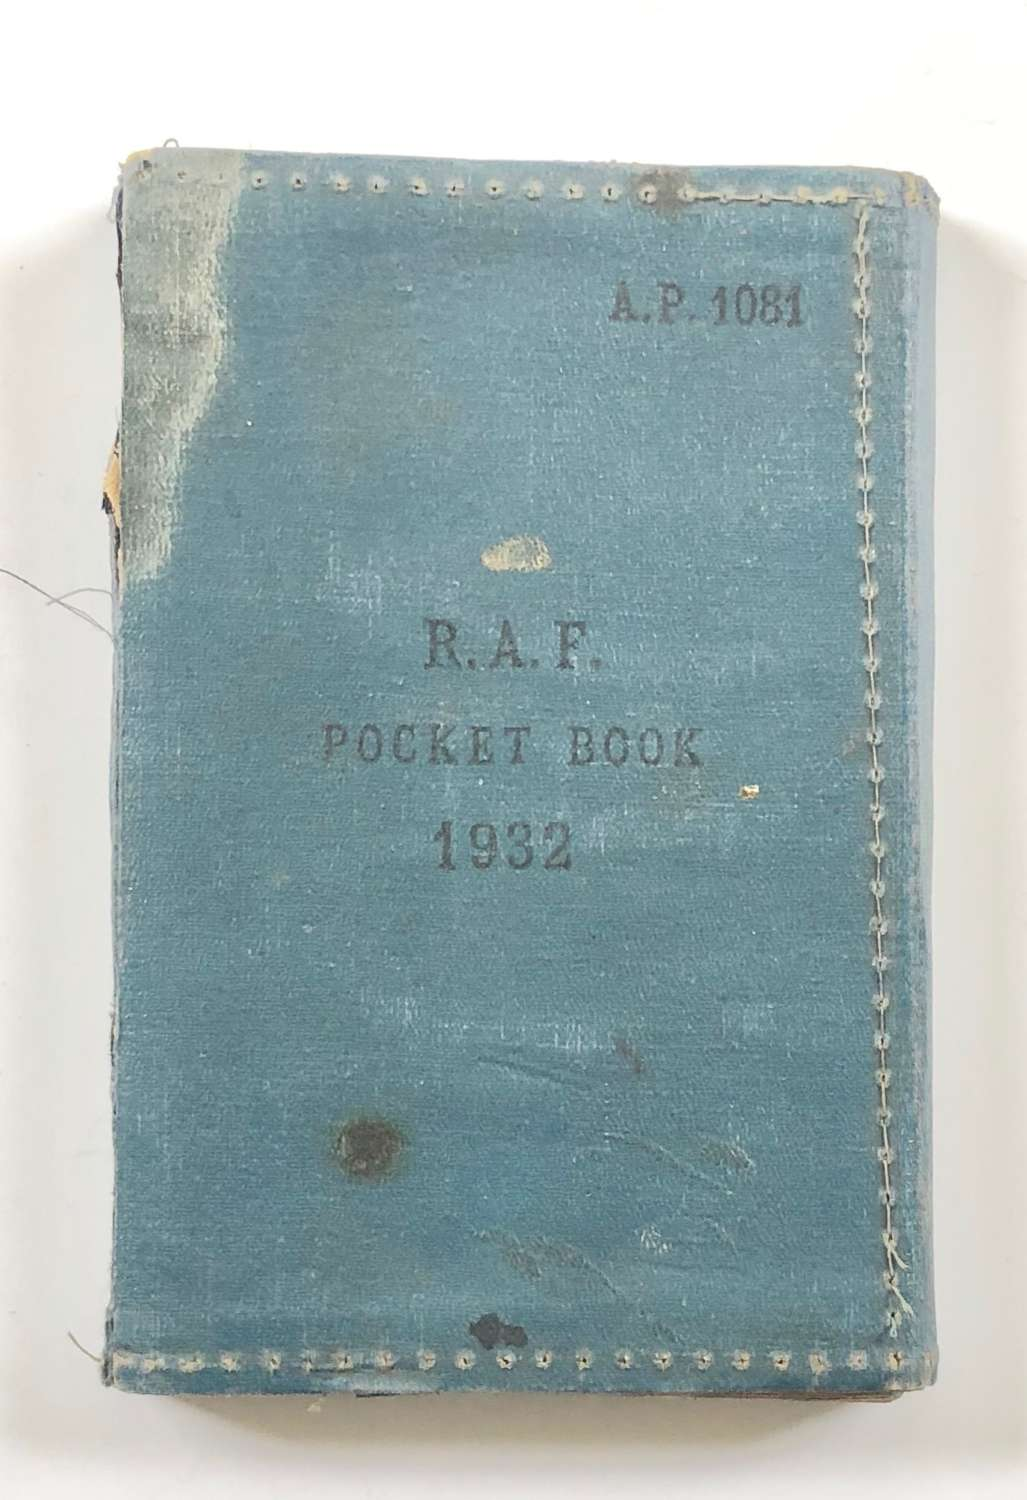 WW2 RAF Attributed Airman's Pocket Book.